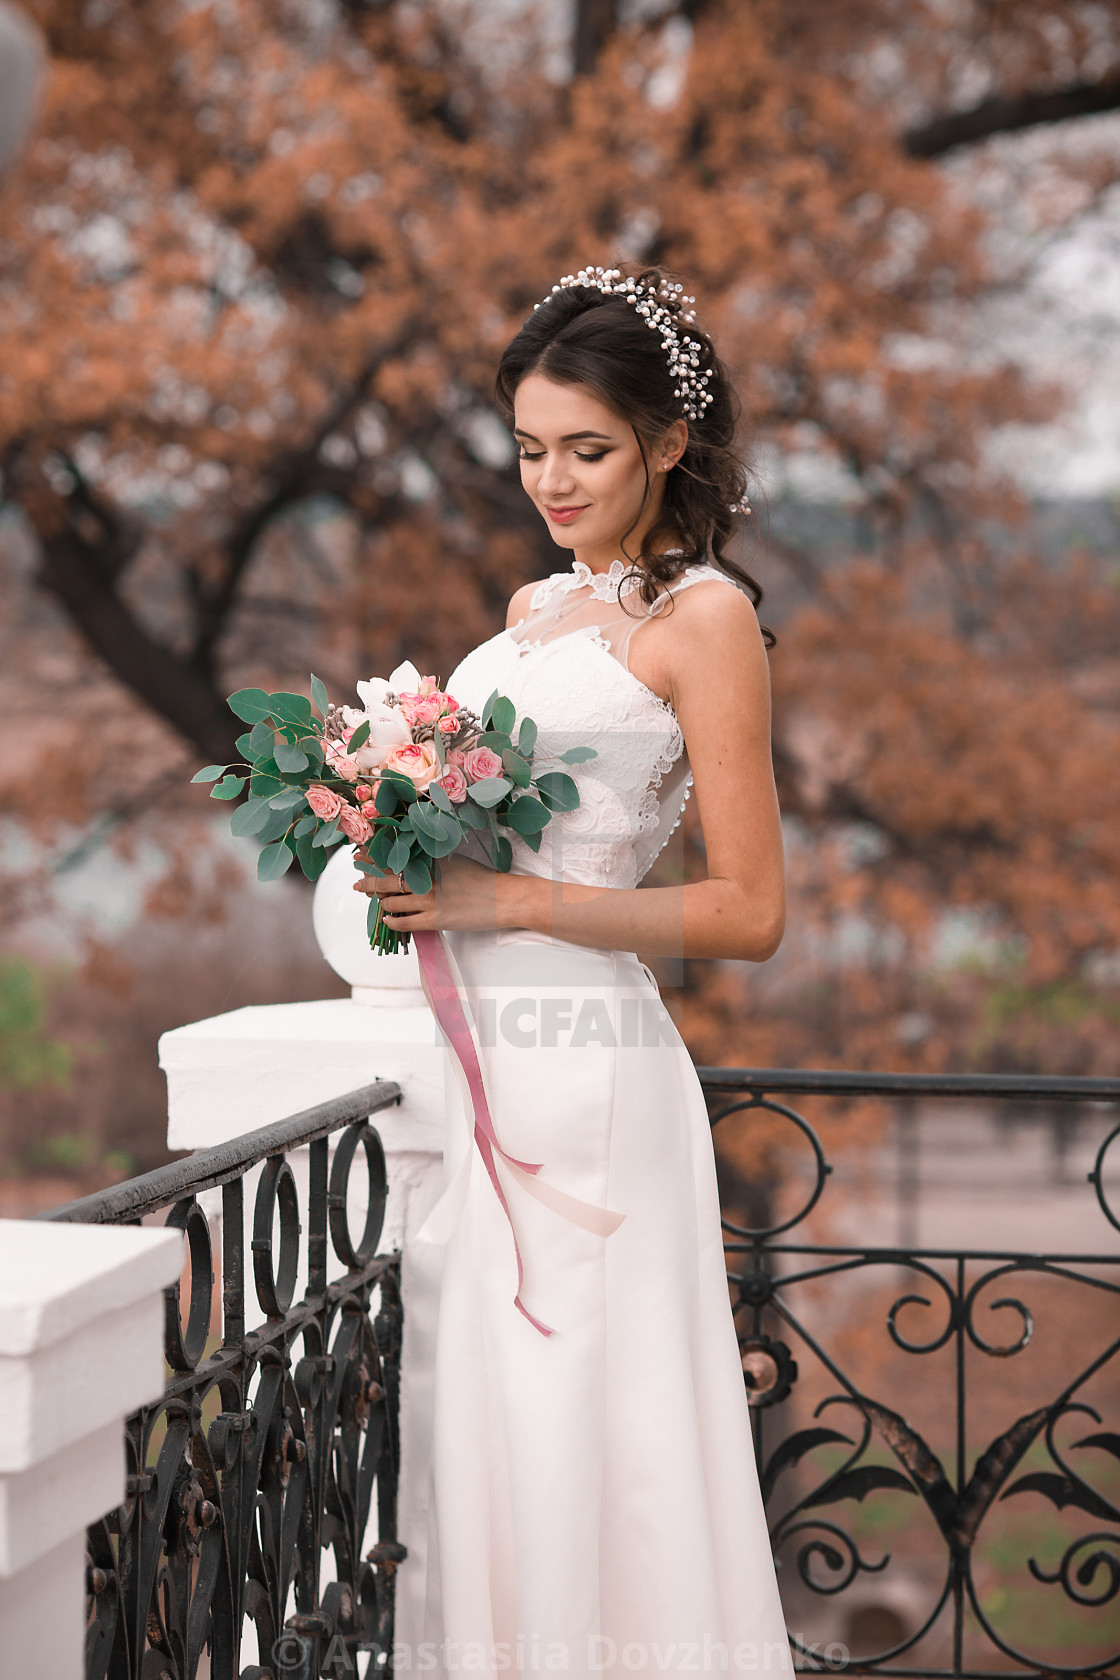 Beautiful Bride In Elegant White Dress Holding A Bouquet Of Flowers